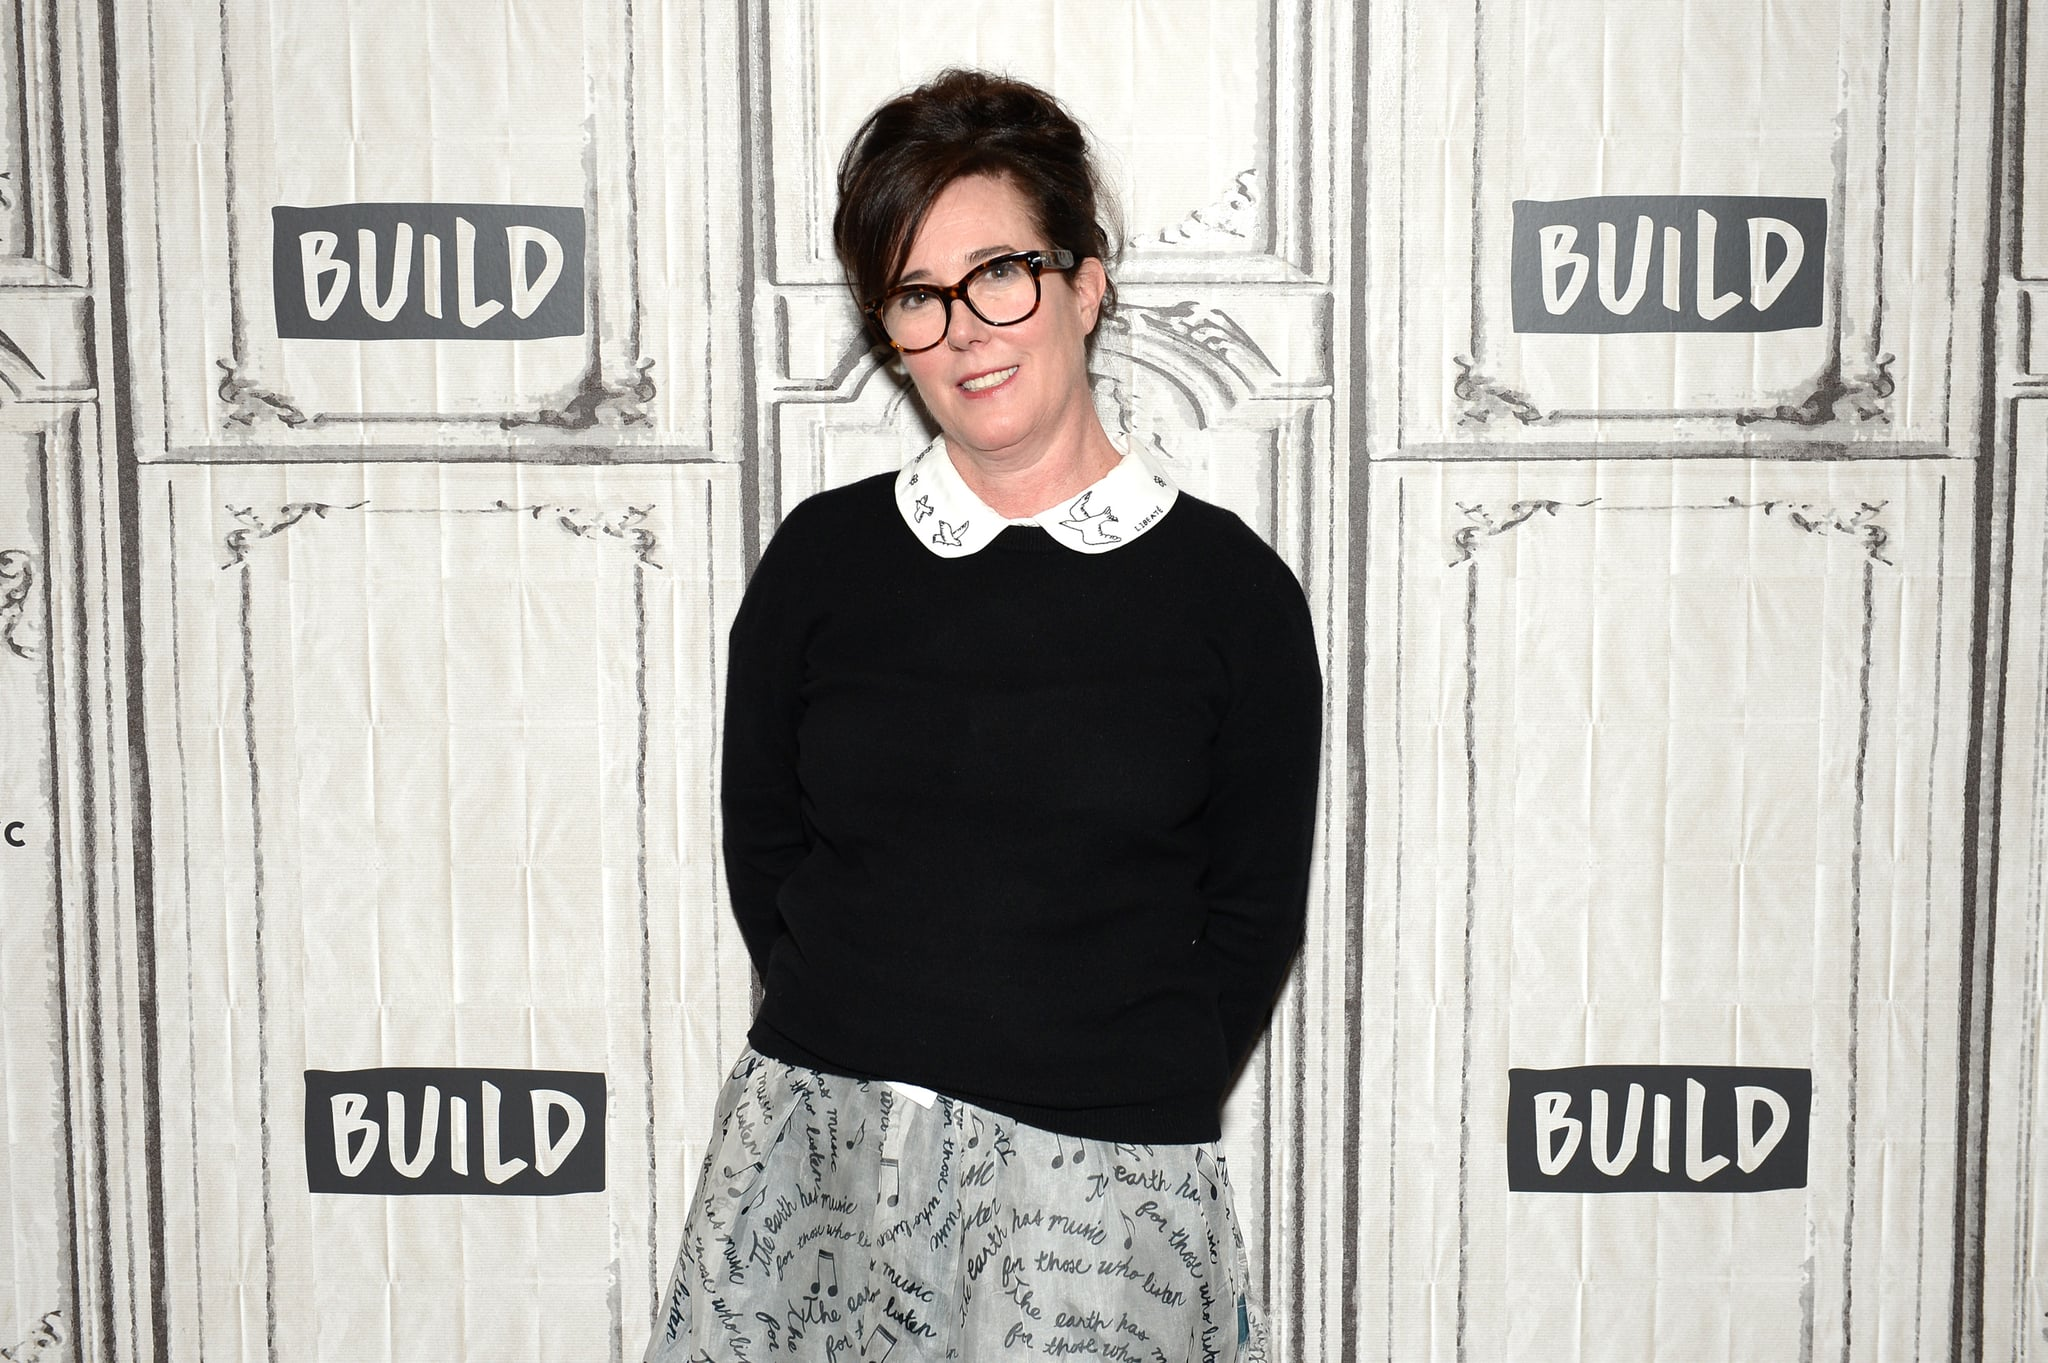 NEW YORK, NY - APRIL 28:  Designer Kate Spade attends AOL Build Series to discuss her latest project Frances Valentine at Build Studio on April 28, 2017 in New York City.  (Photo by Andrew Toth/FilmMagic)